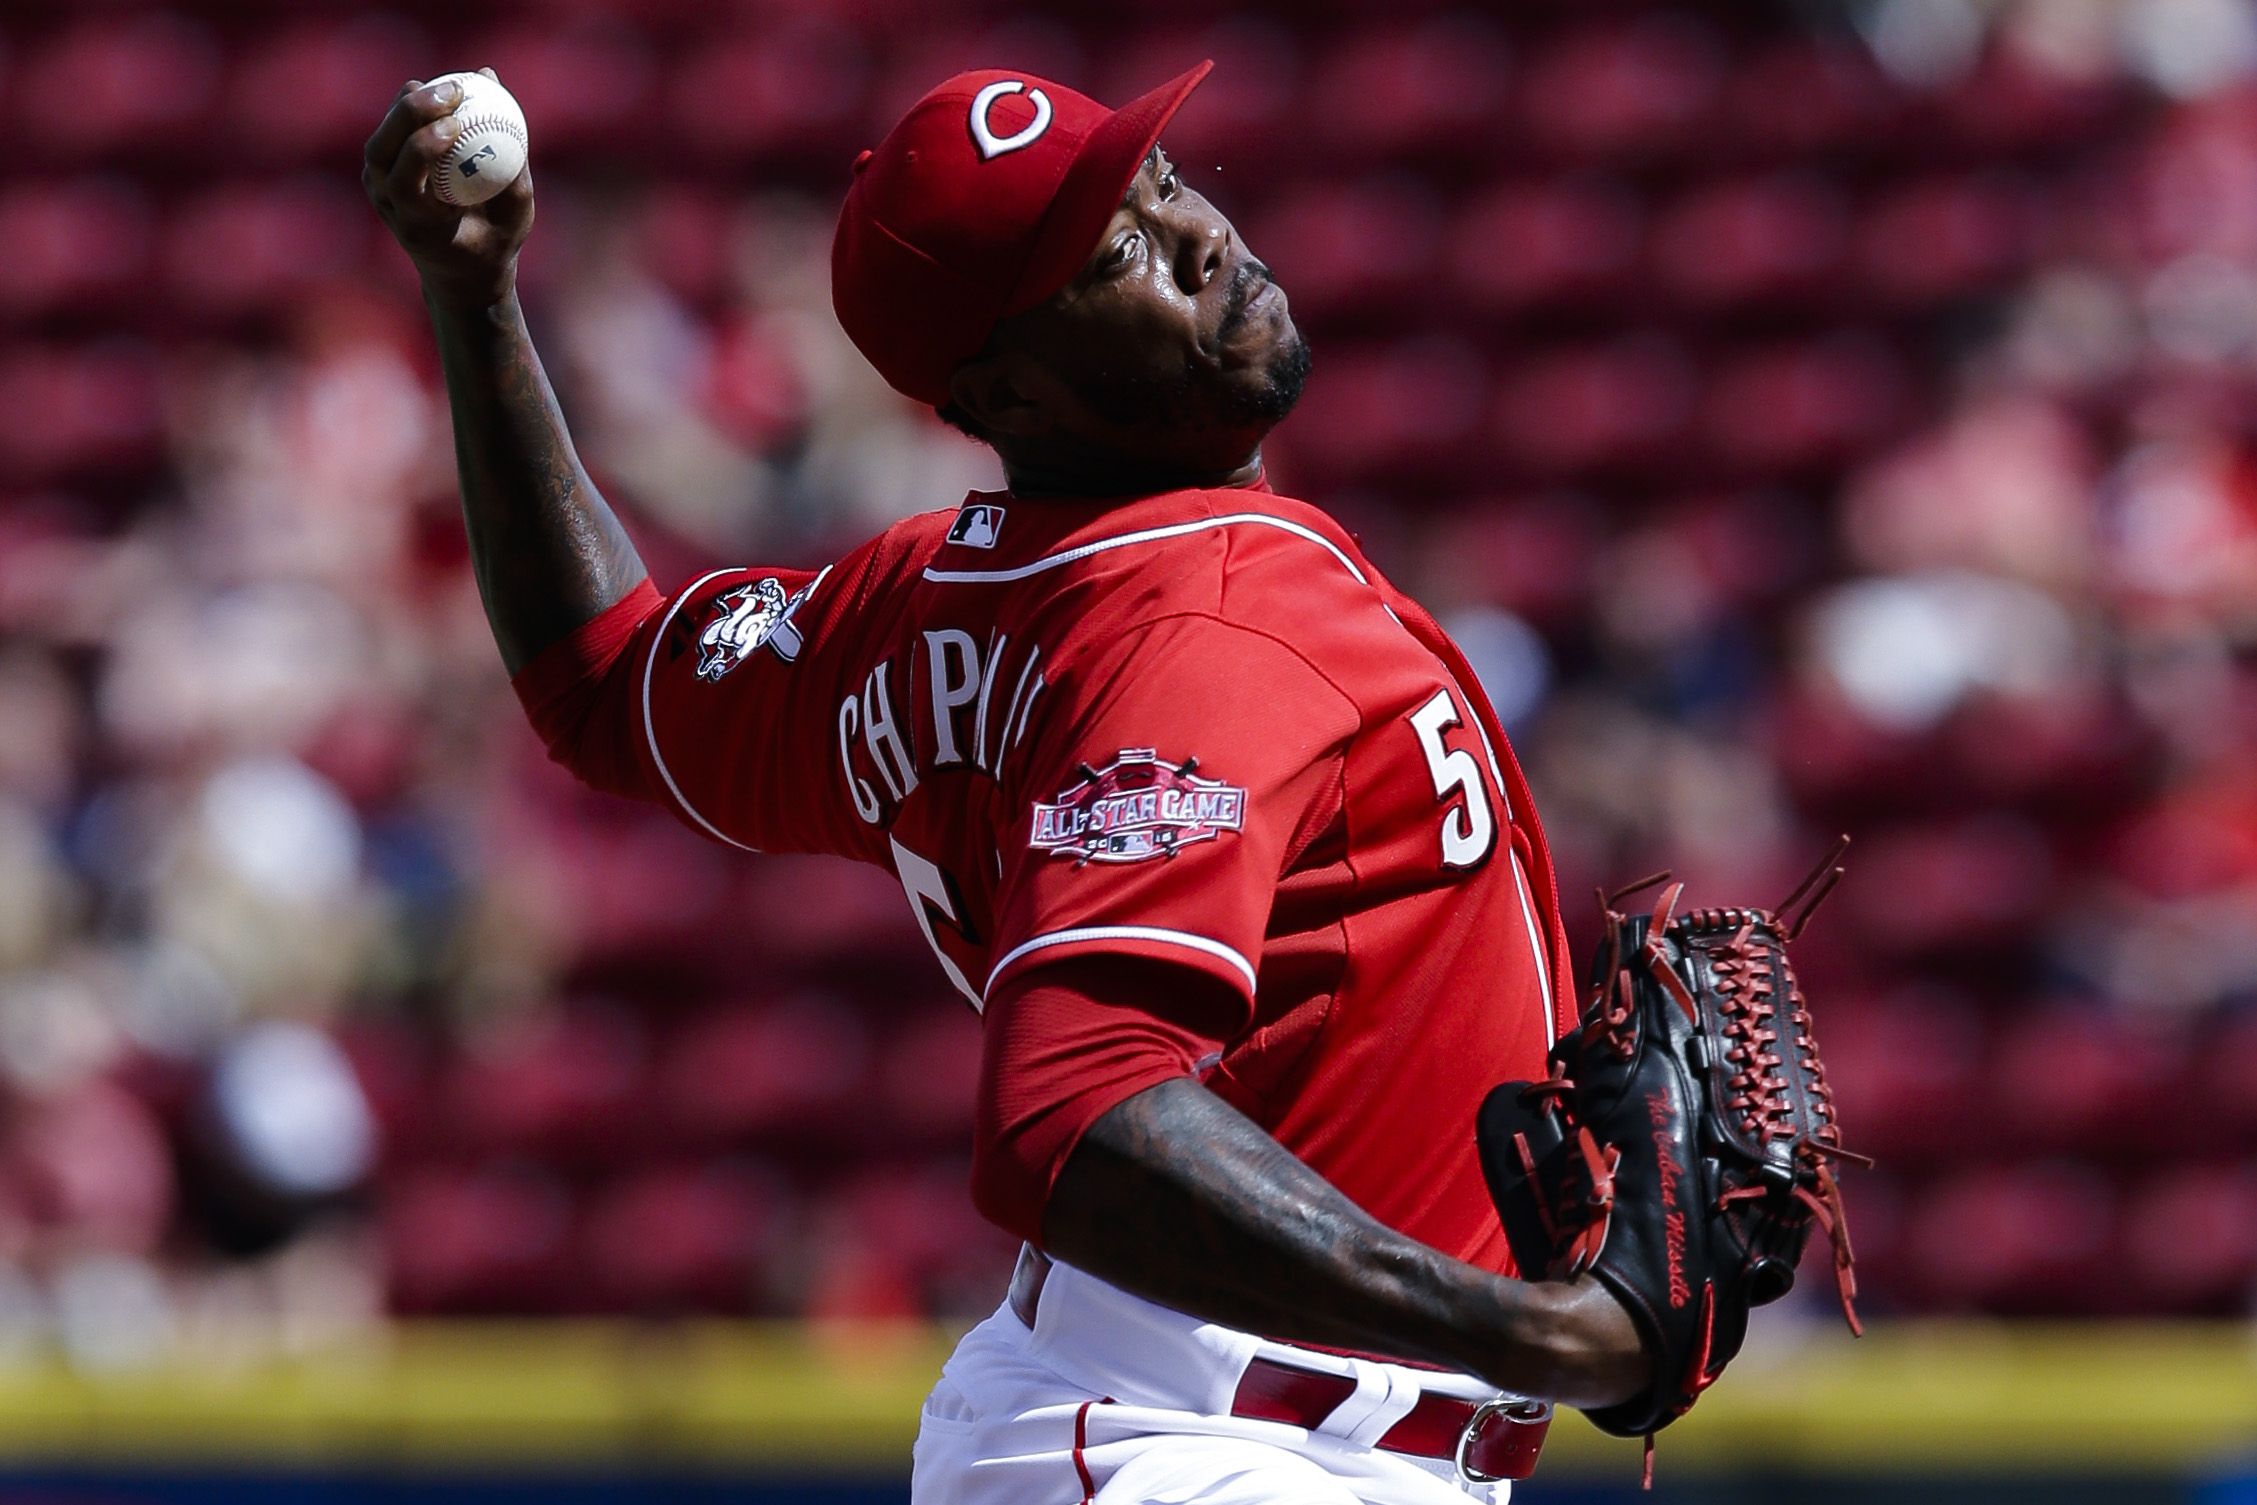 Cincinnati Reds relief pitcher Aroldis Chapman throws in the ninth inning of a baseball game against the Cleveland Indians, Sunday, July 19, 2015, in Cincinnati. (AP Photo/John Minchillo)